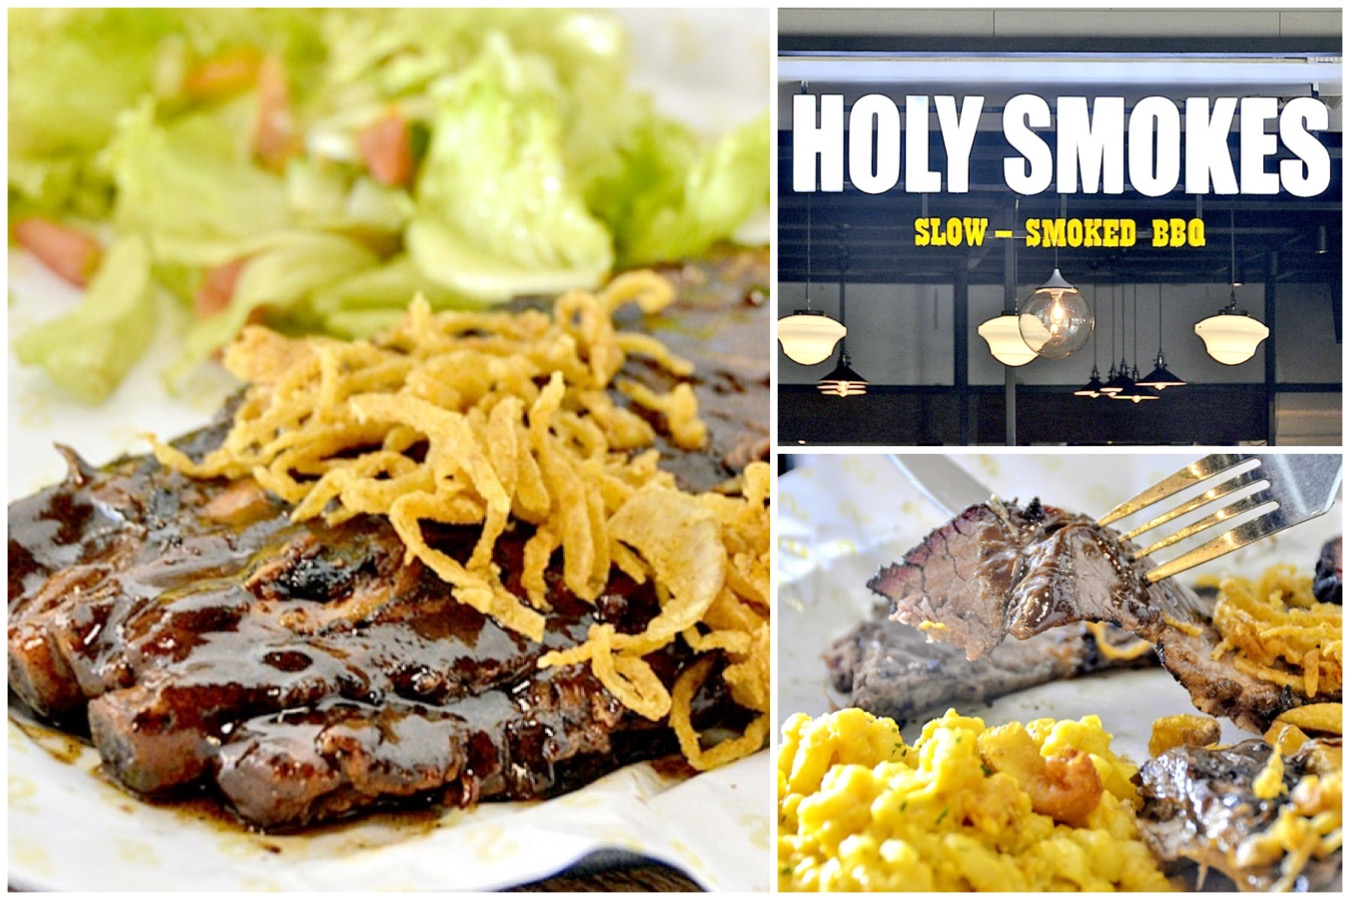 Holy Smokes - Popular Texas Style Slow-Smoked BBQ Restaurant In Jakarta, For Beef Ribs & Briskets